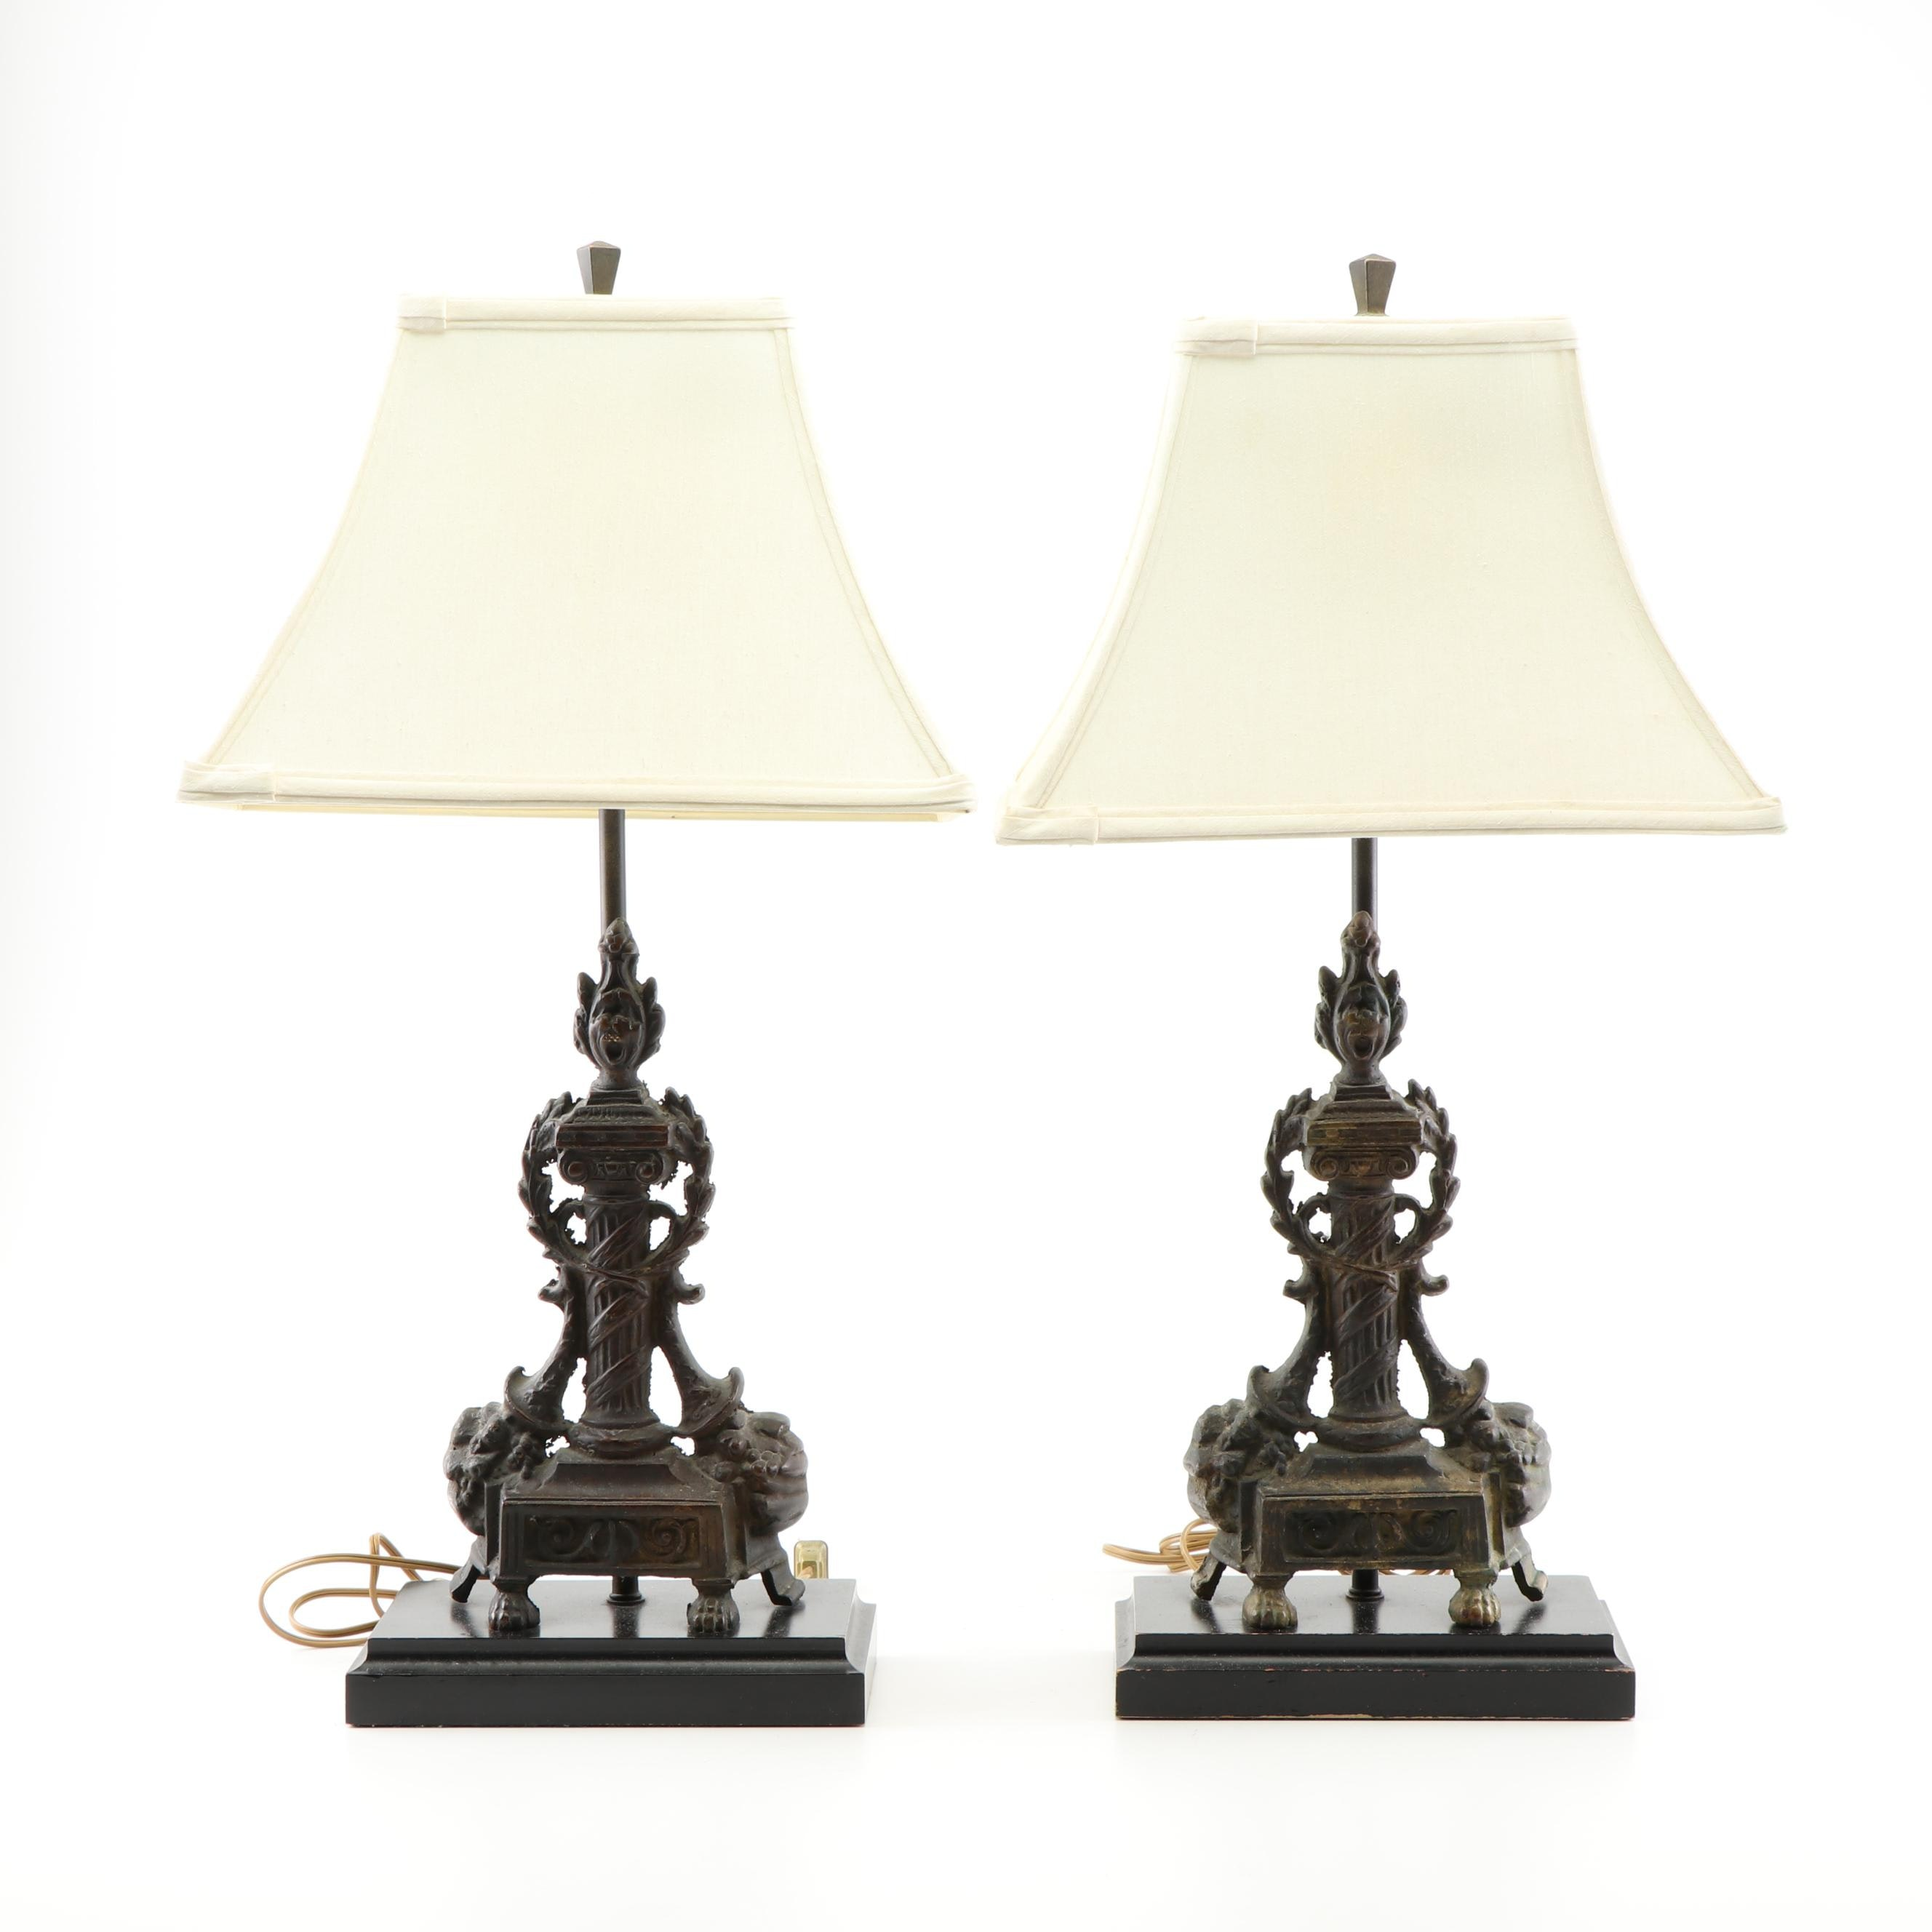 Neoclassical Style Cast Iron Table Lamps